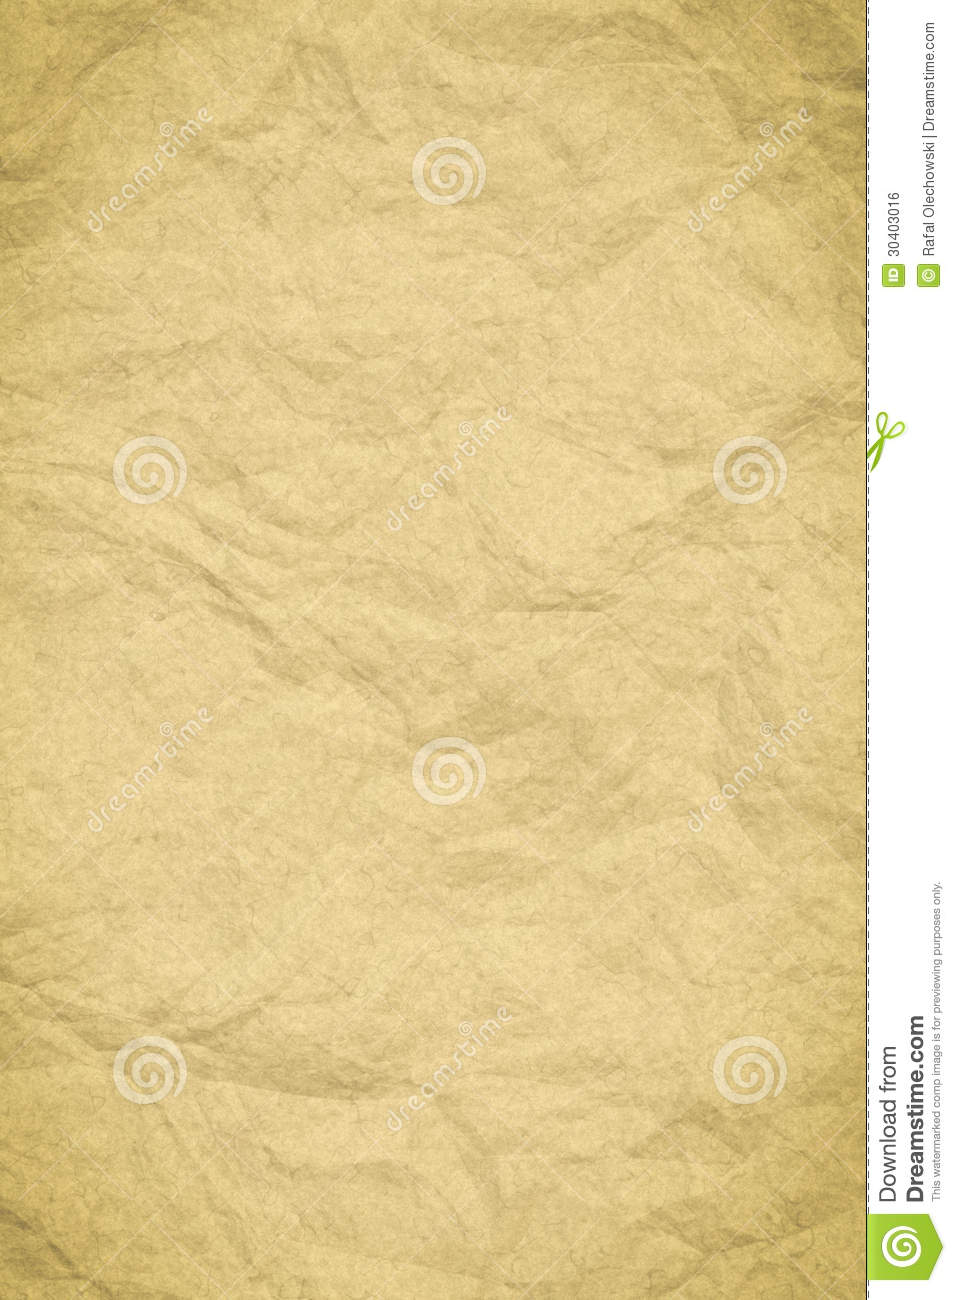 Old paper template texture stock illustration. Illustration of brown ...